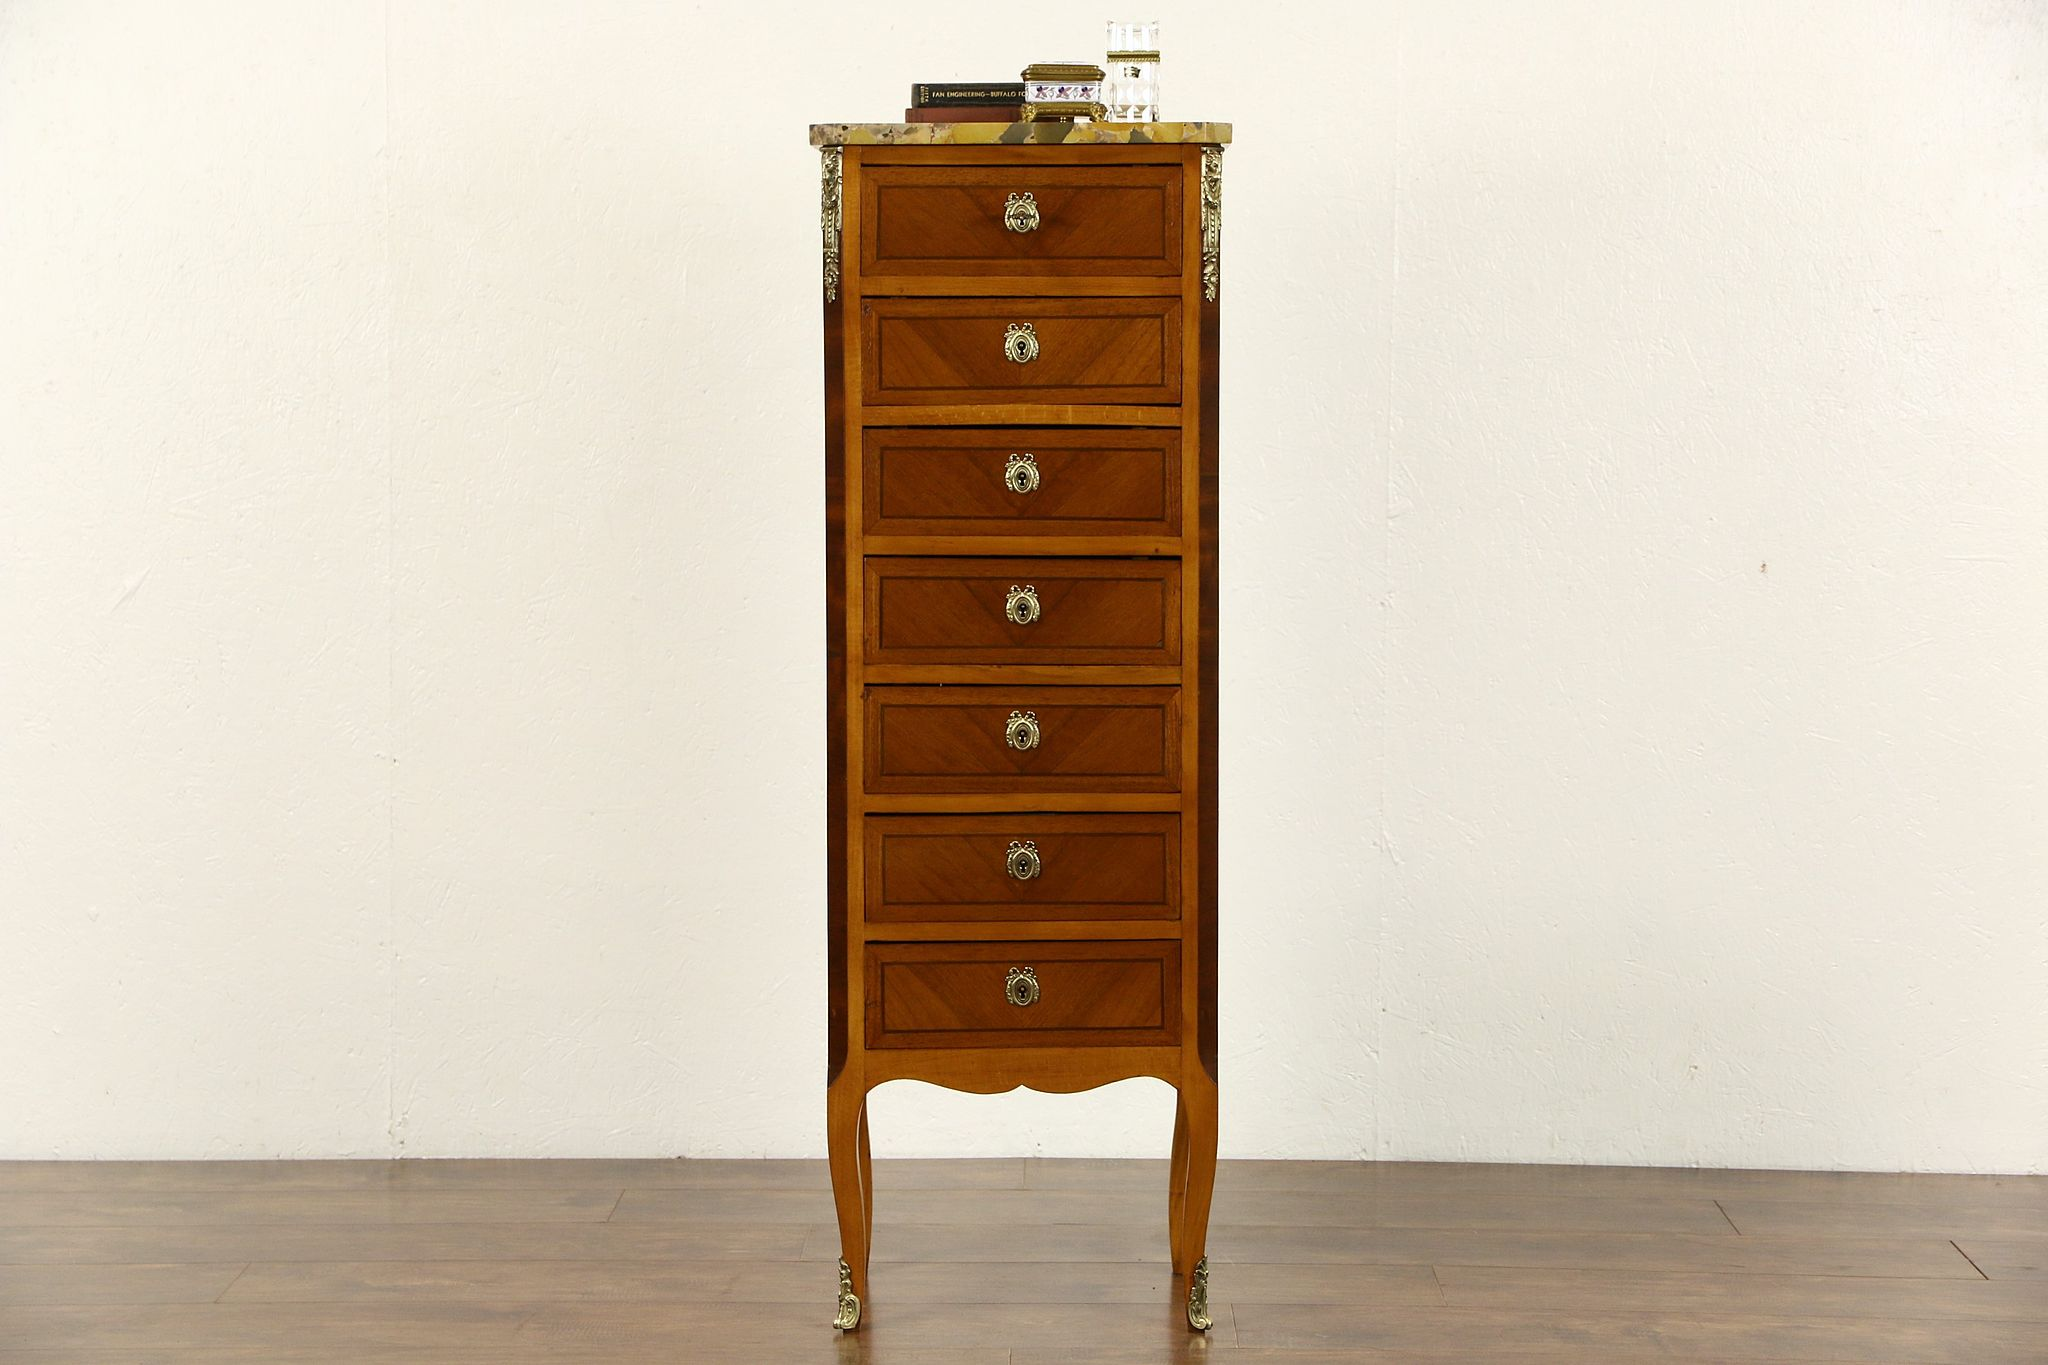 Sold French 1920 Antique Semainier 7 Drawer Lingerie Chest Marble Top Harp Gallery Antiques Furniture